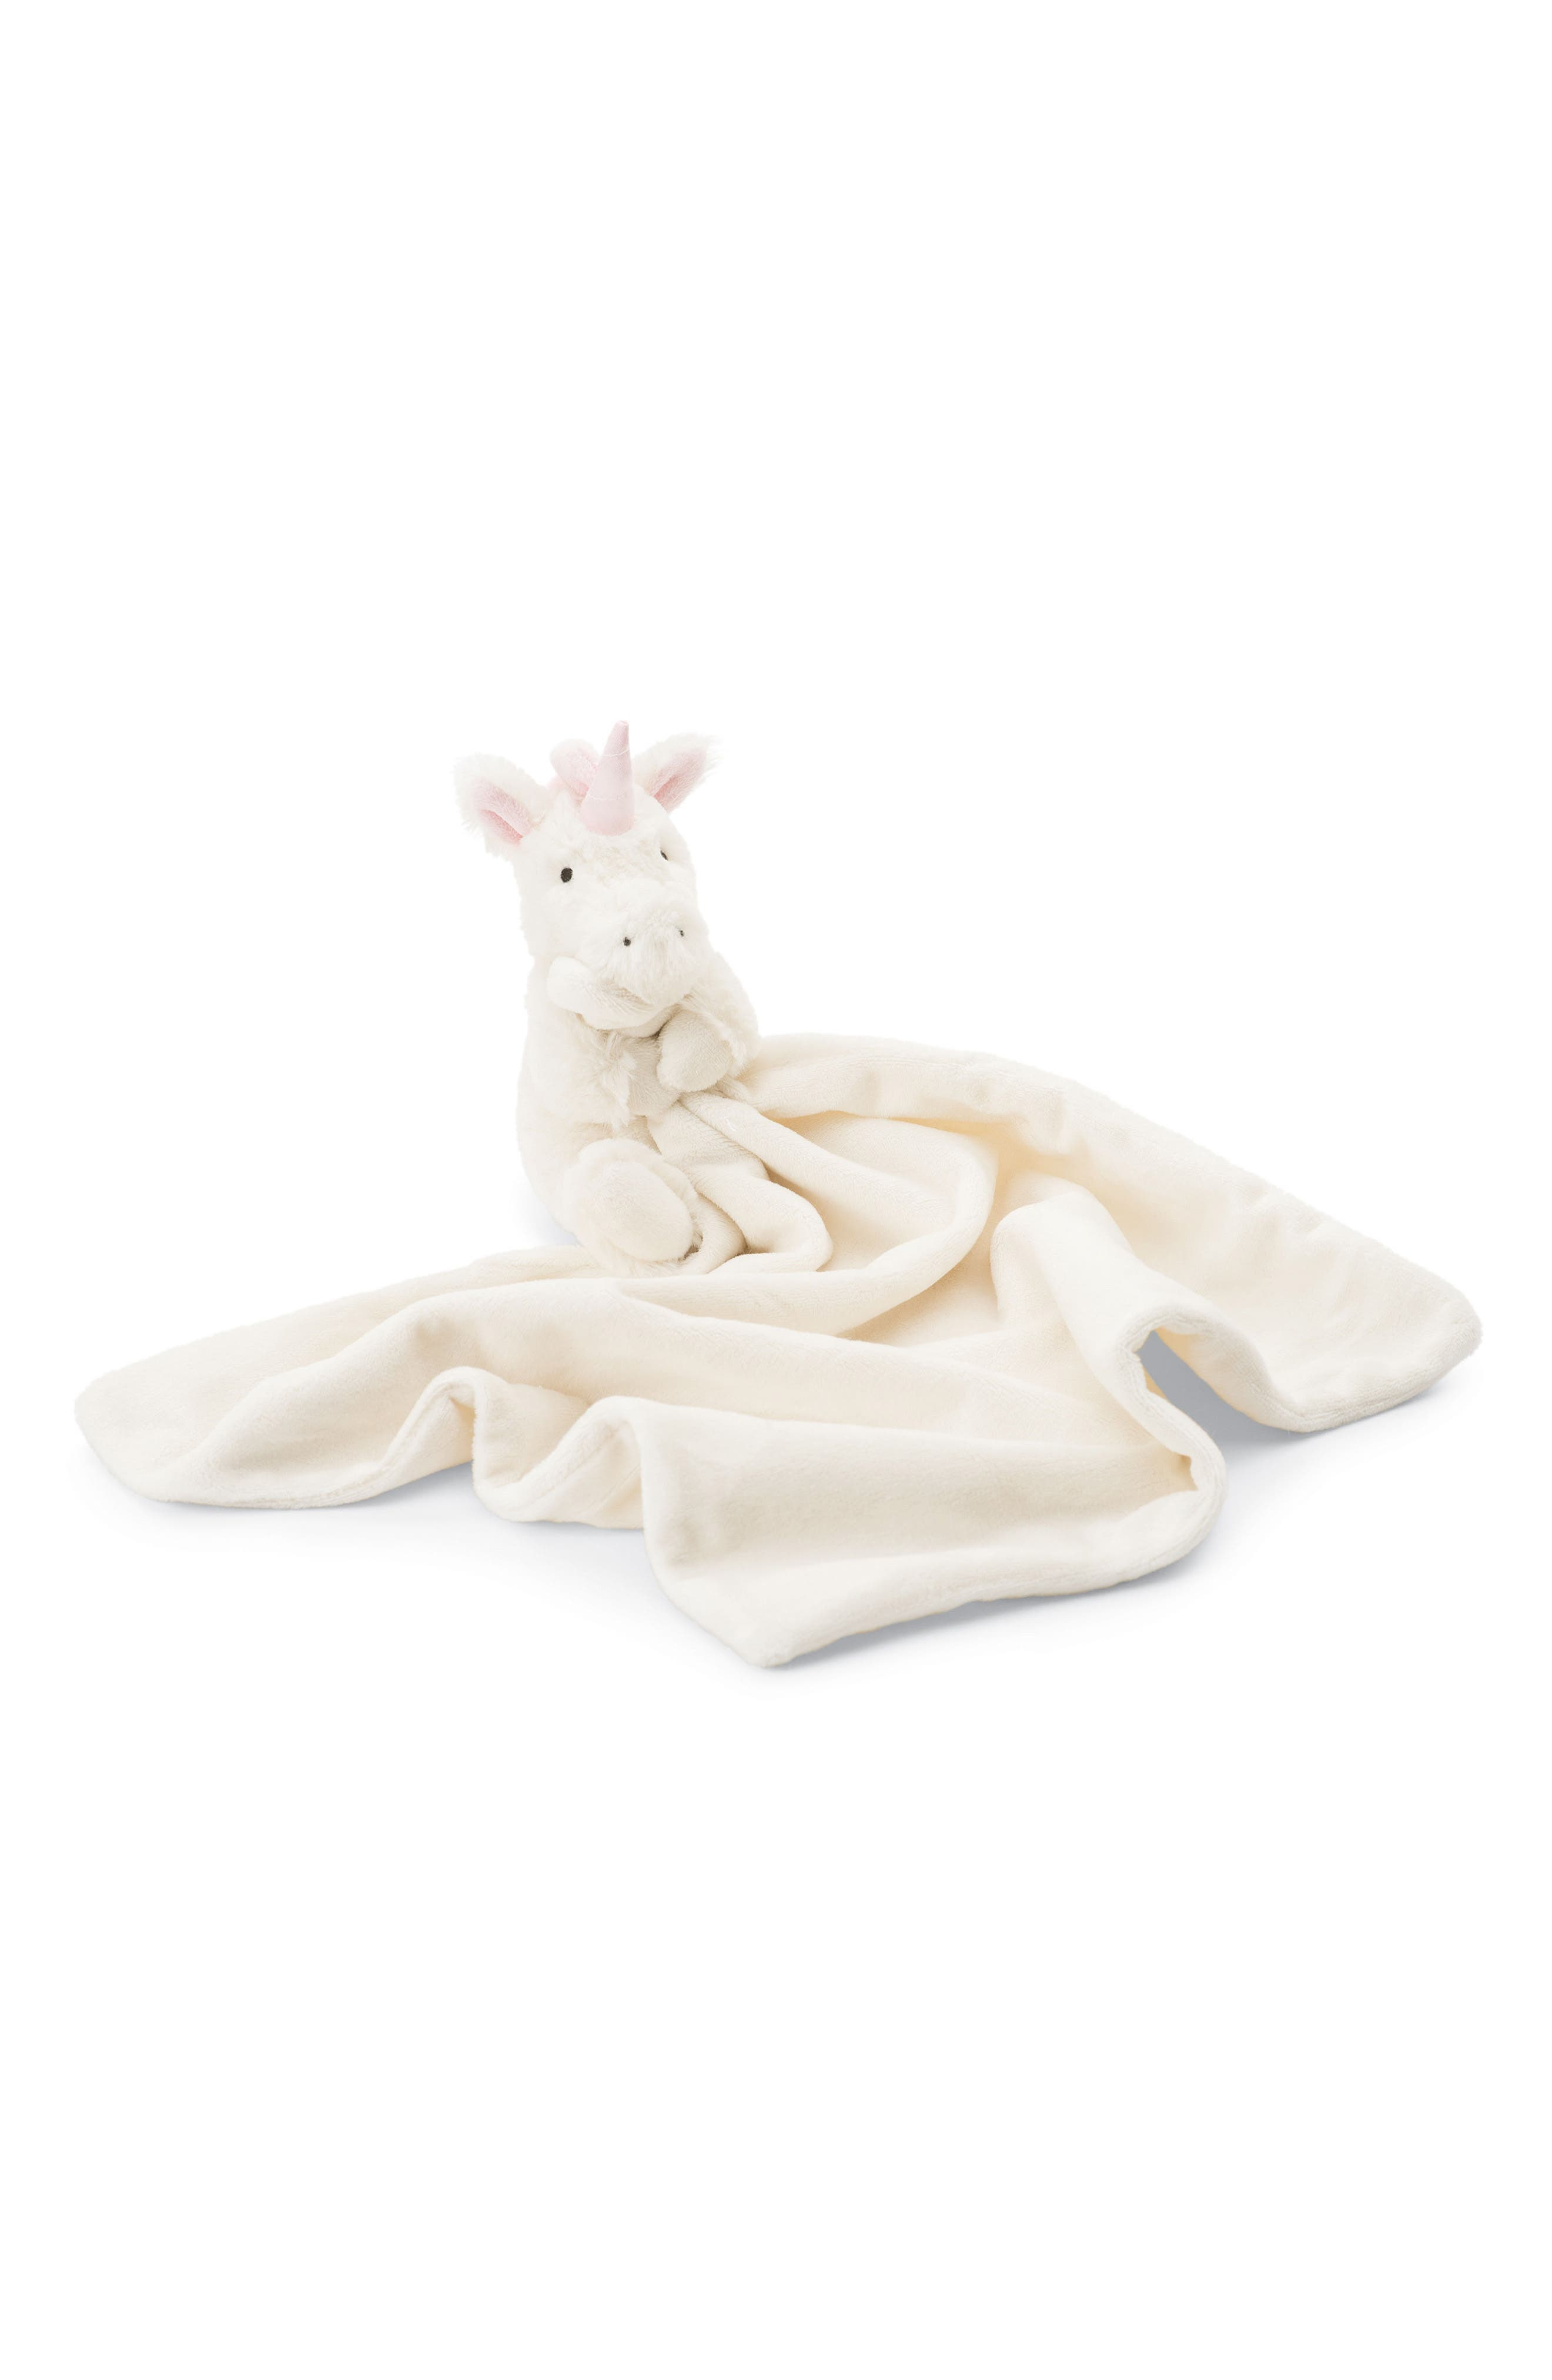 JELLYCAT, Bashful Unicorn Soother Blanket, Main thumbnail 1, color, WHITE